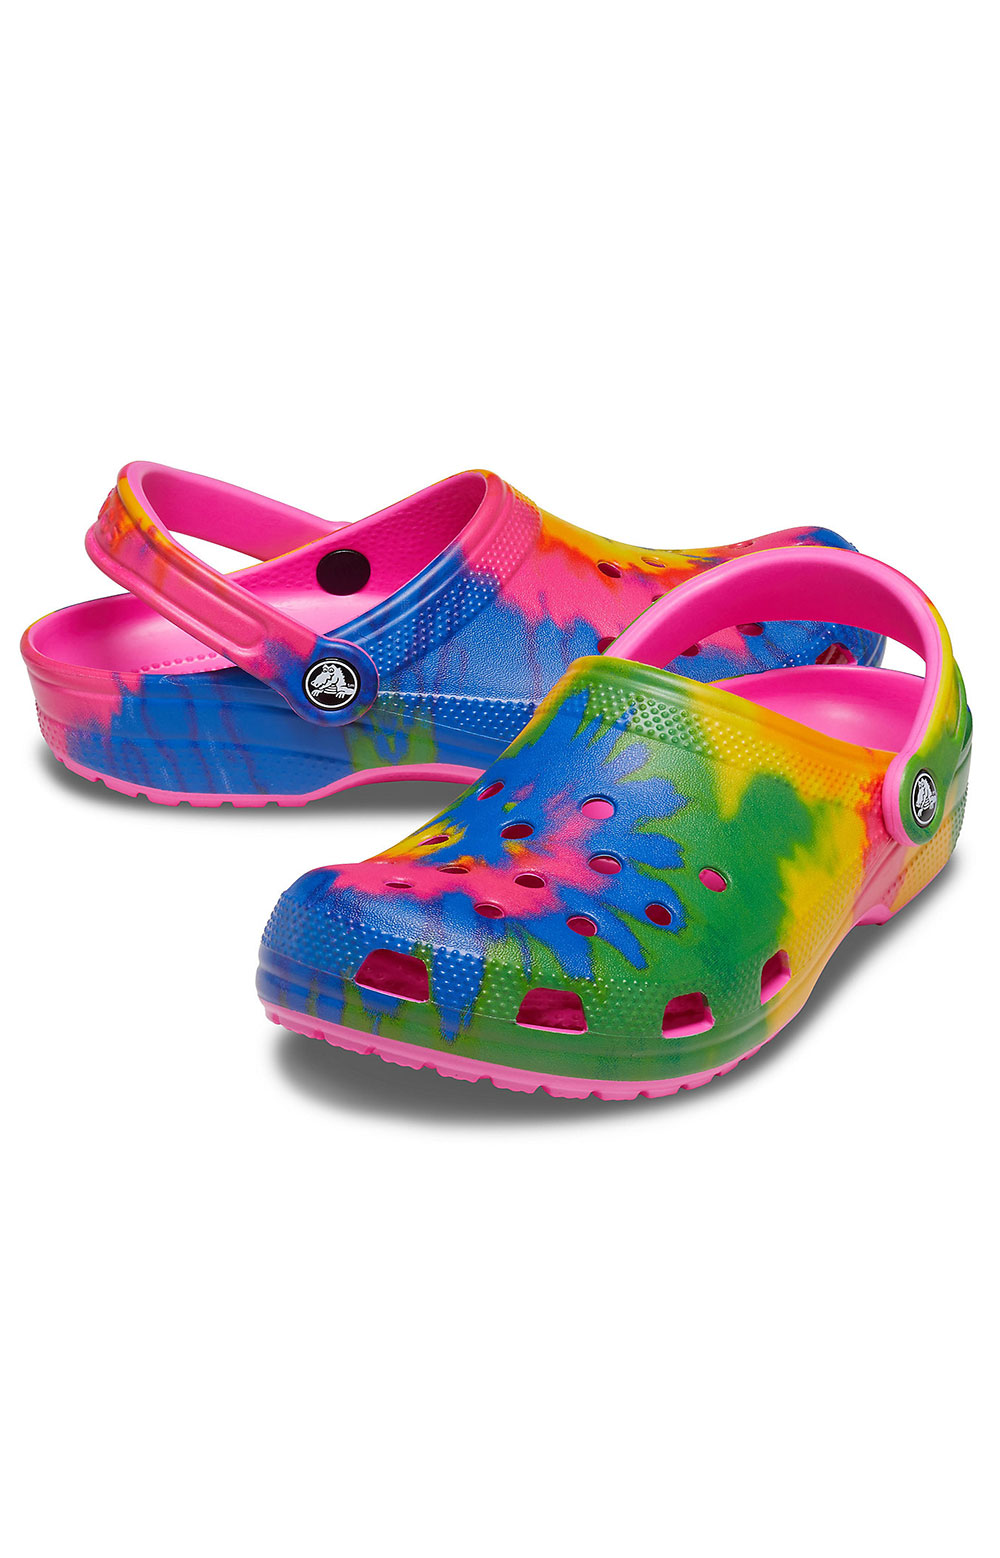 Classic Tie-Dye Graphic Clogs - Electric Pink/Multi 3